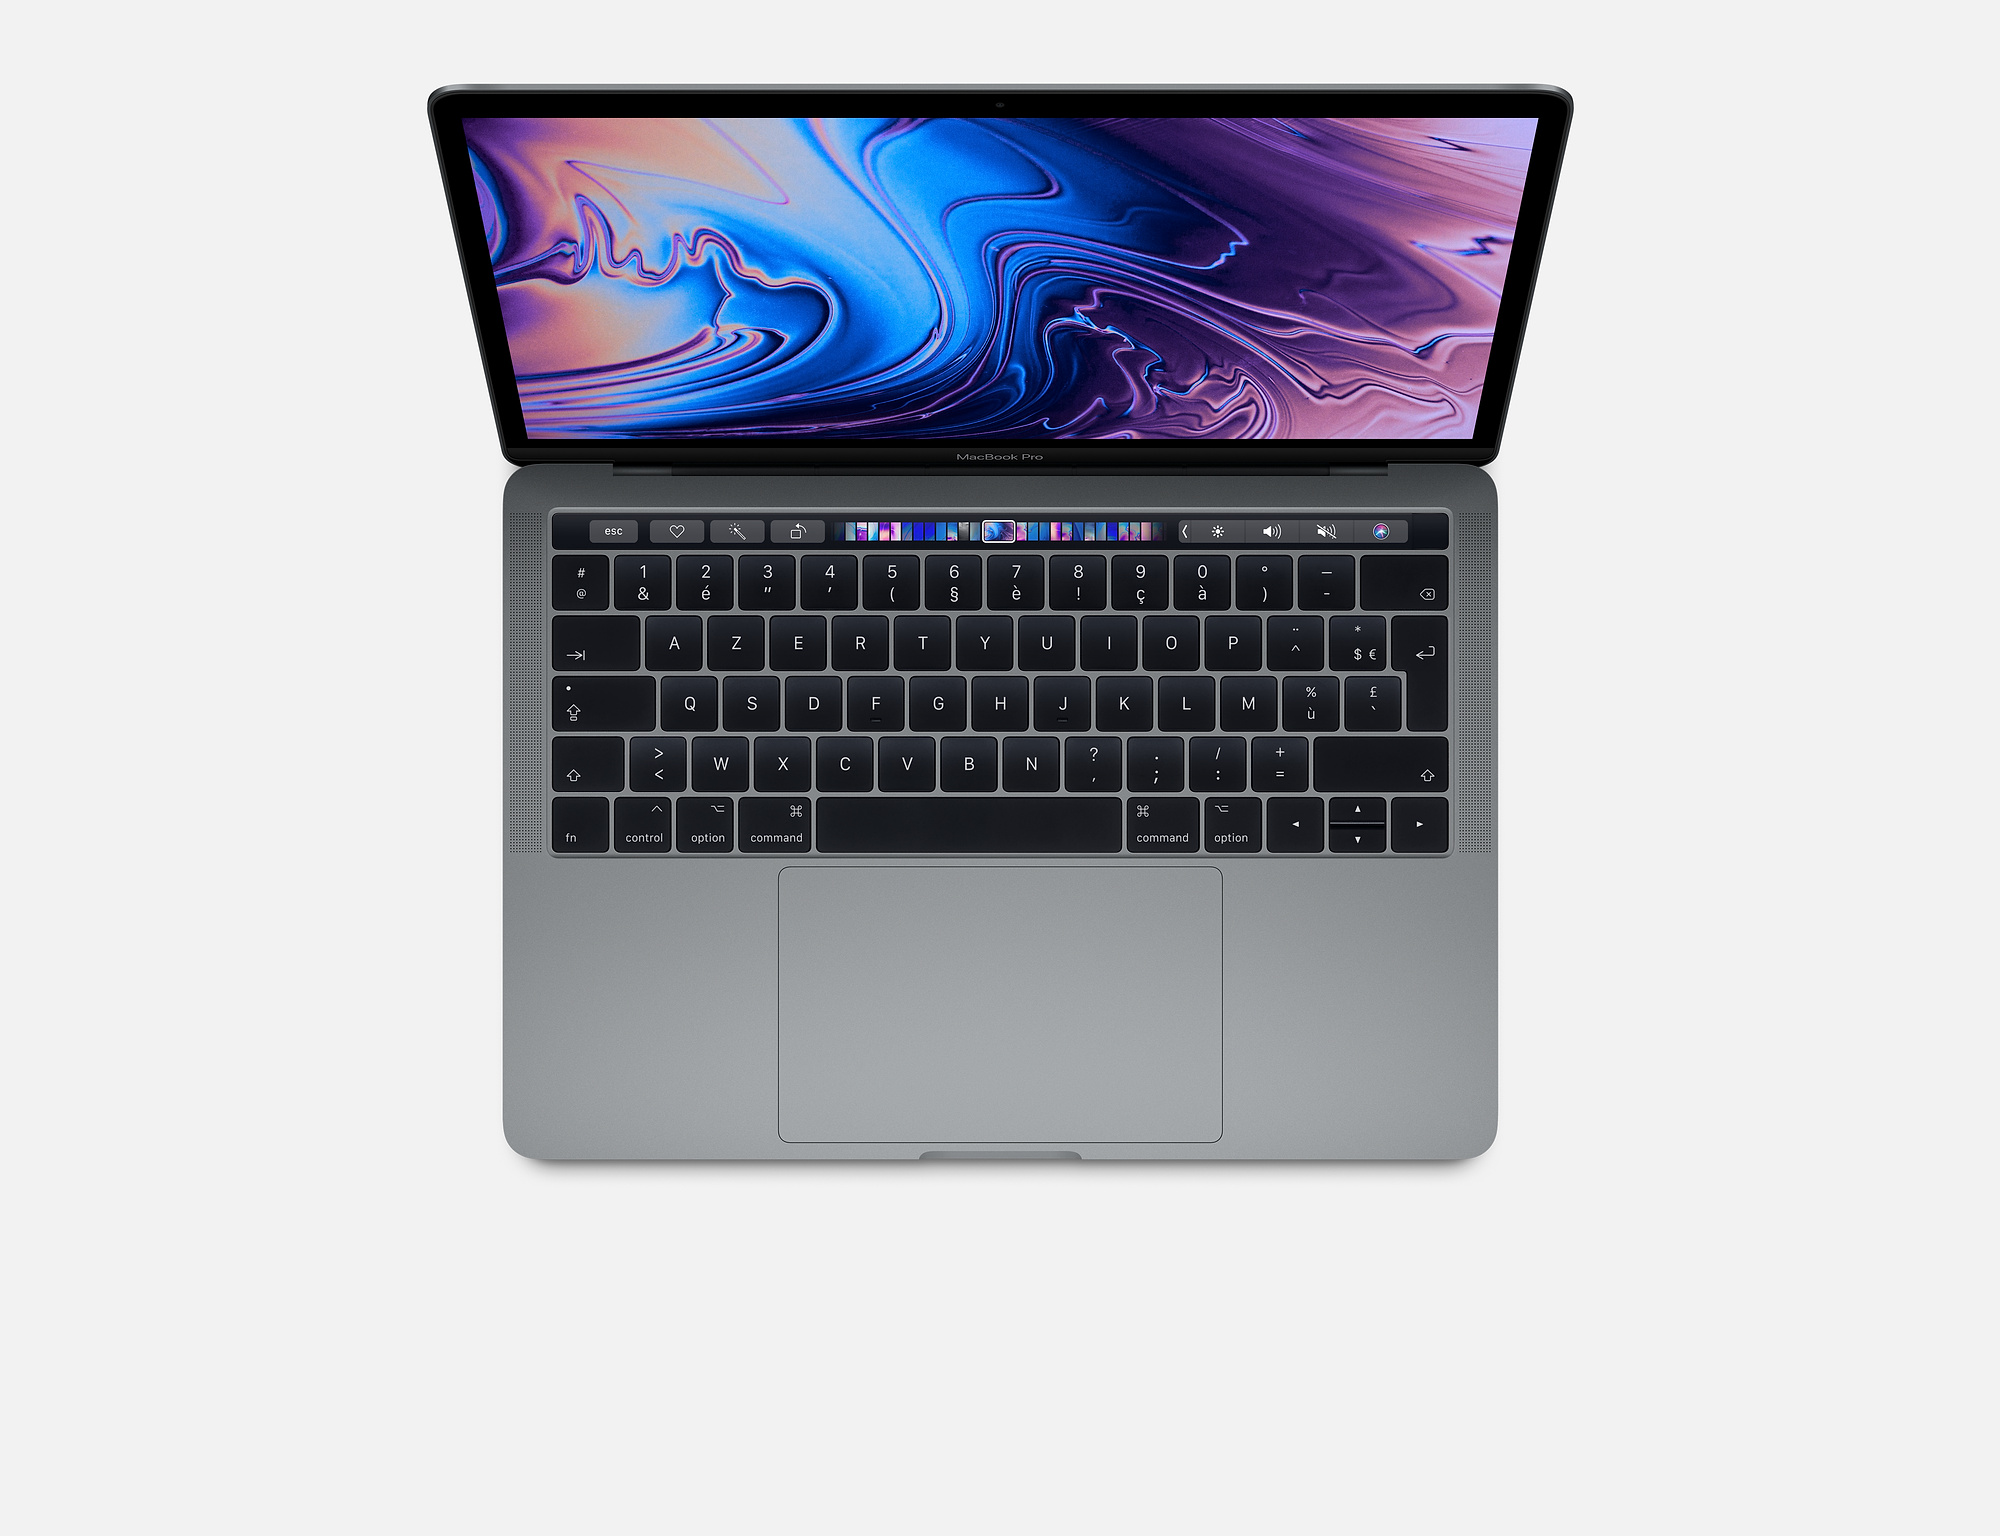 mbp13touch-space-gallery2-201807_GEO_EMEA_LANG_FR.jpeg